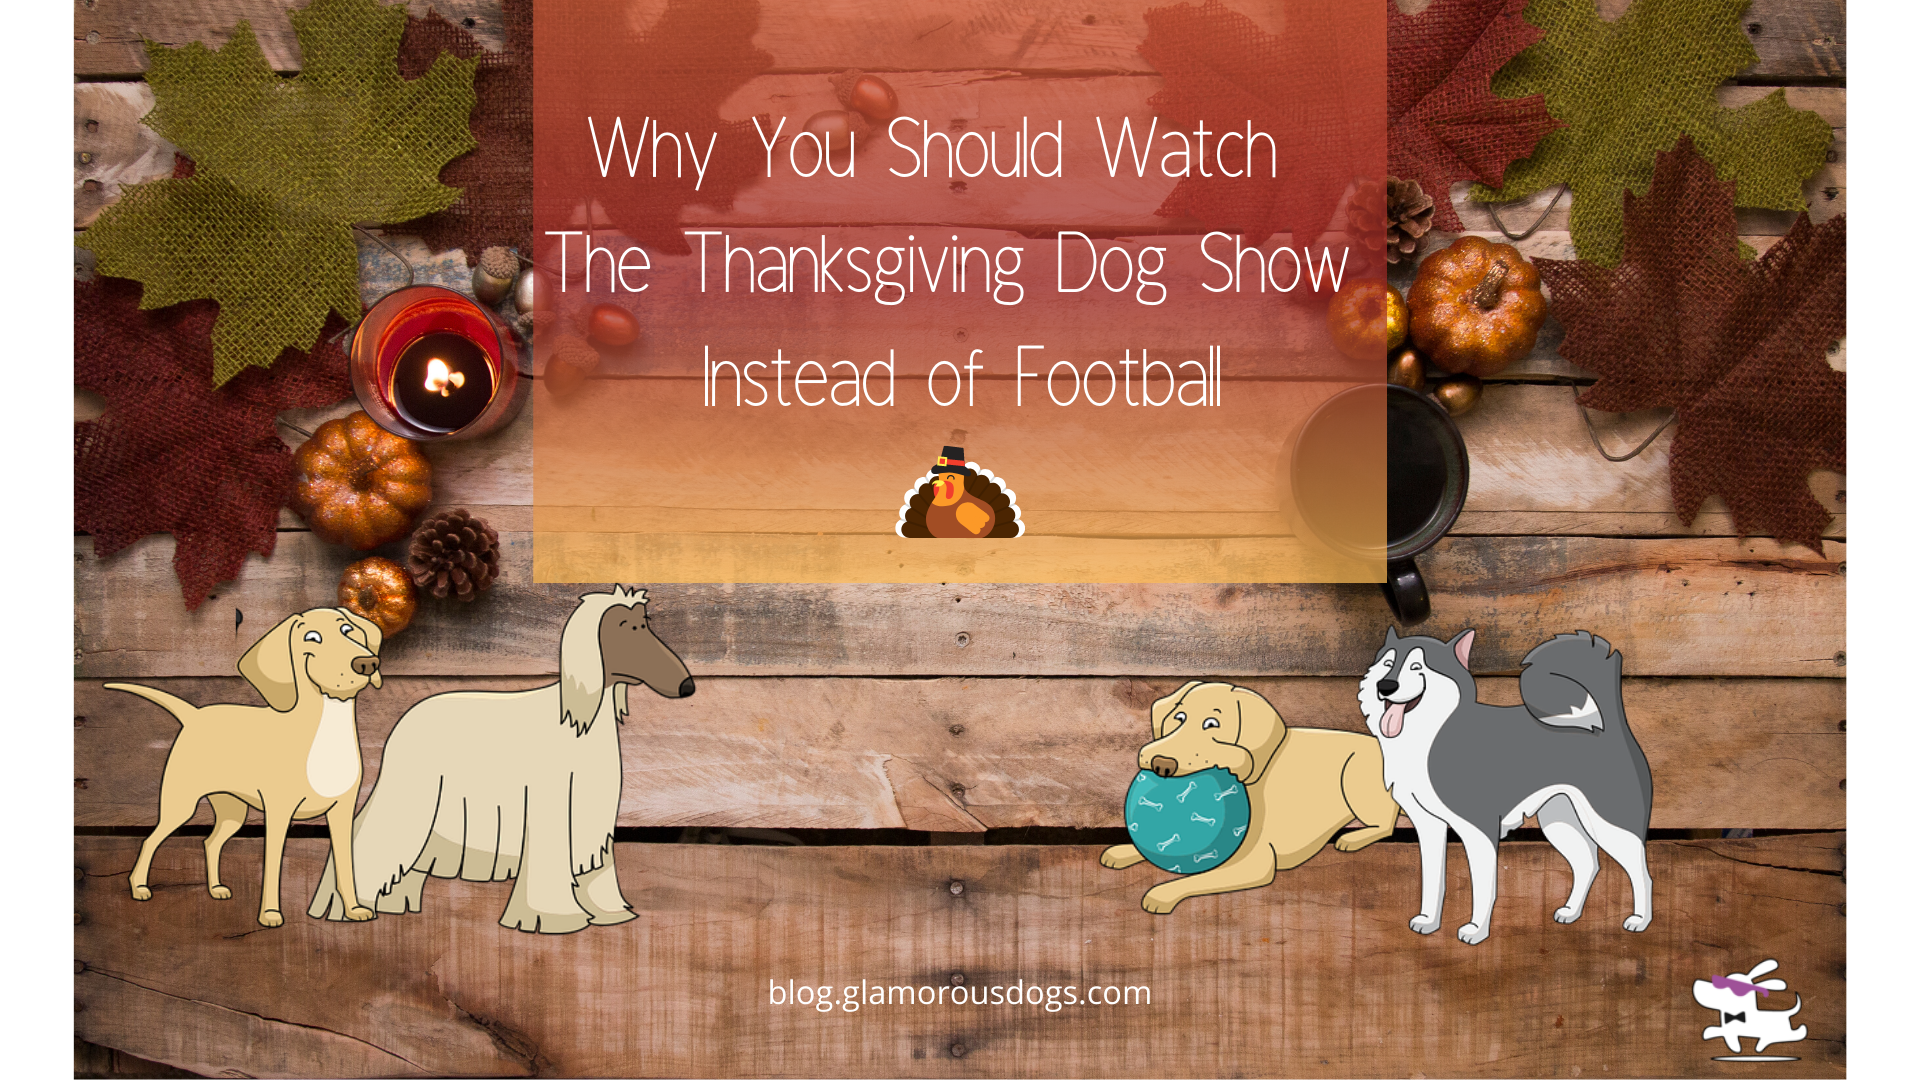 Why You Should Watch The Thanksgiving Dog Show Instead of Football